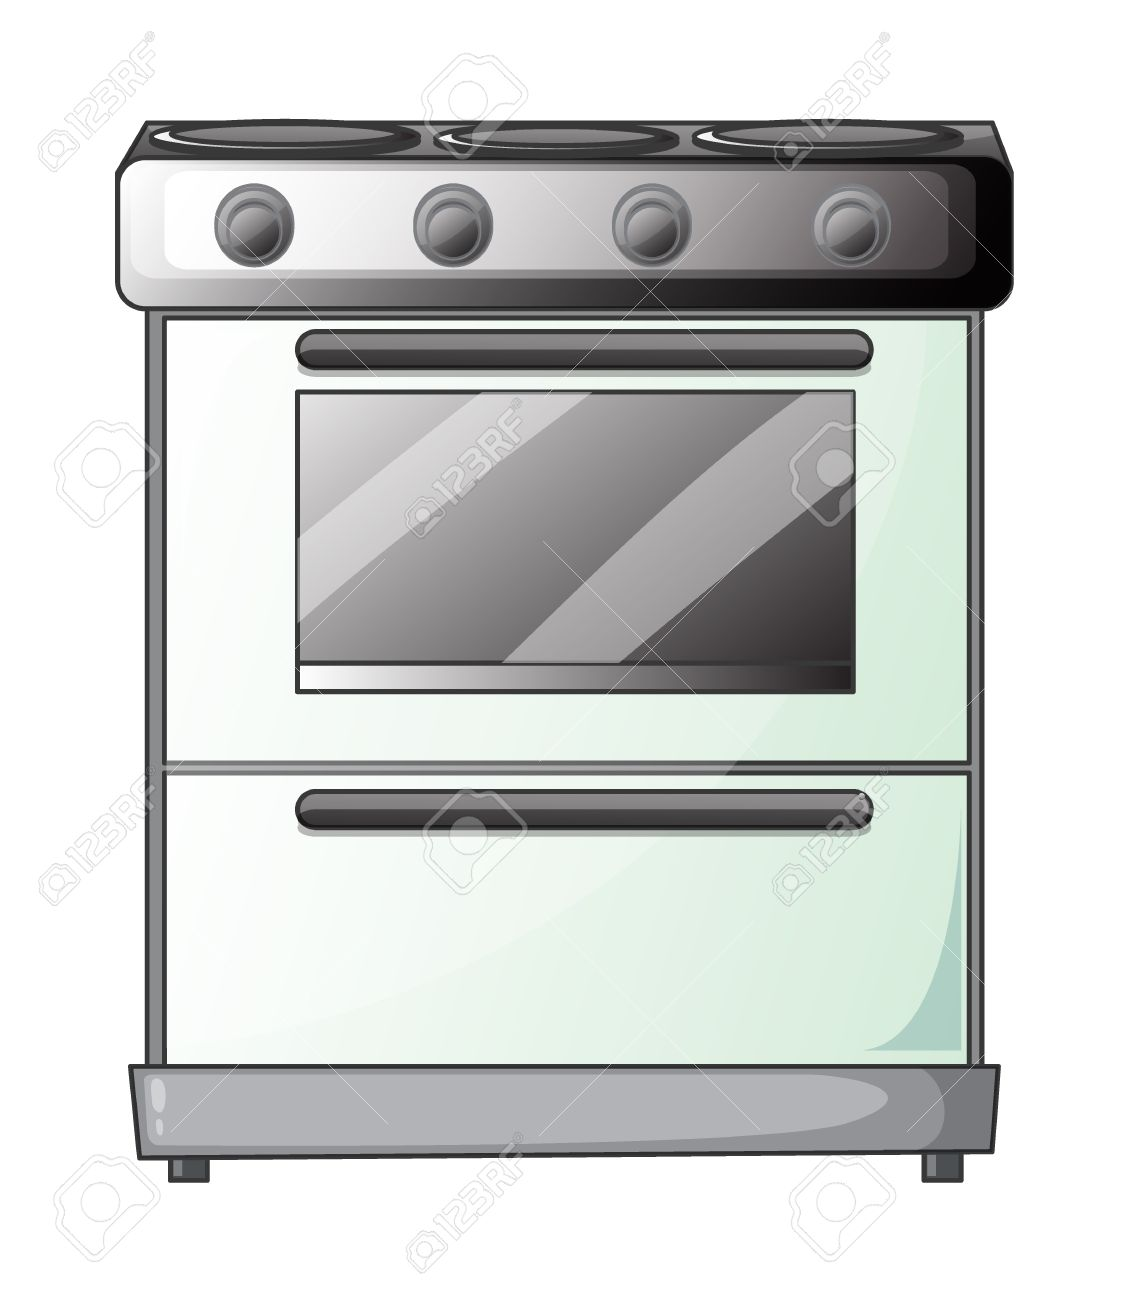 Oven Gas Stove Illustration Of A Gas Stove On A White Background Royalty Free